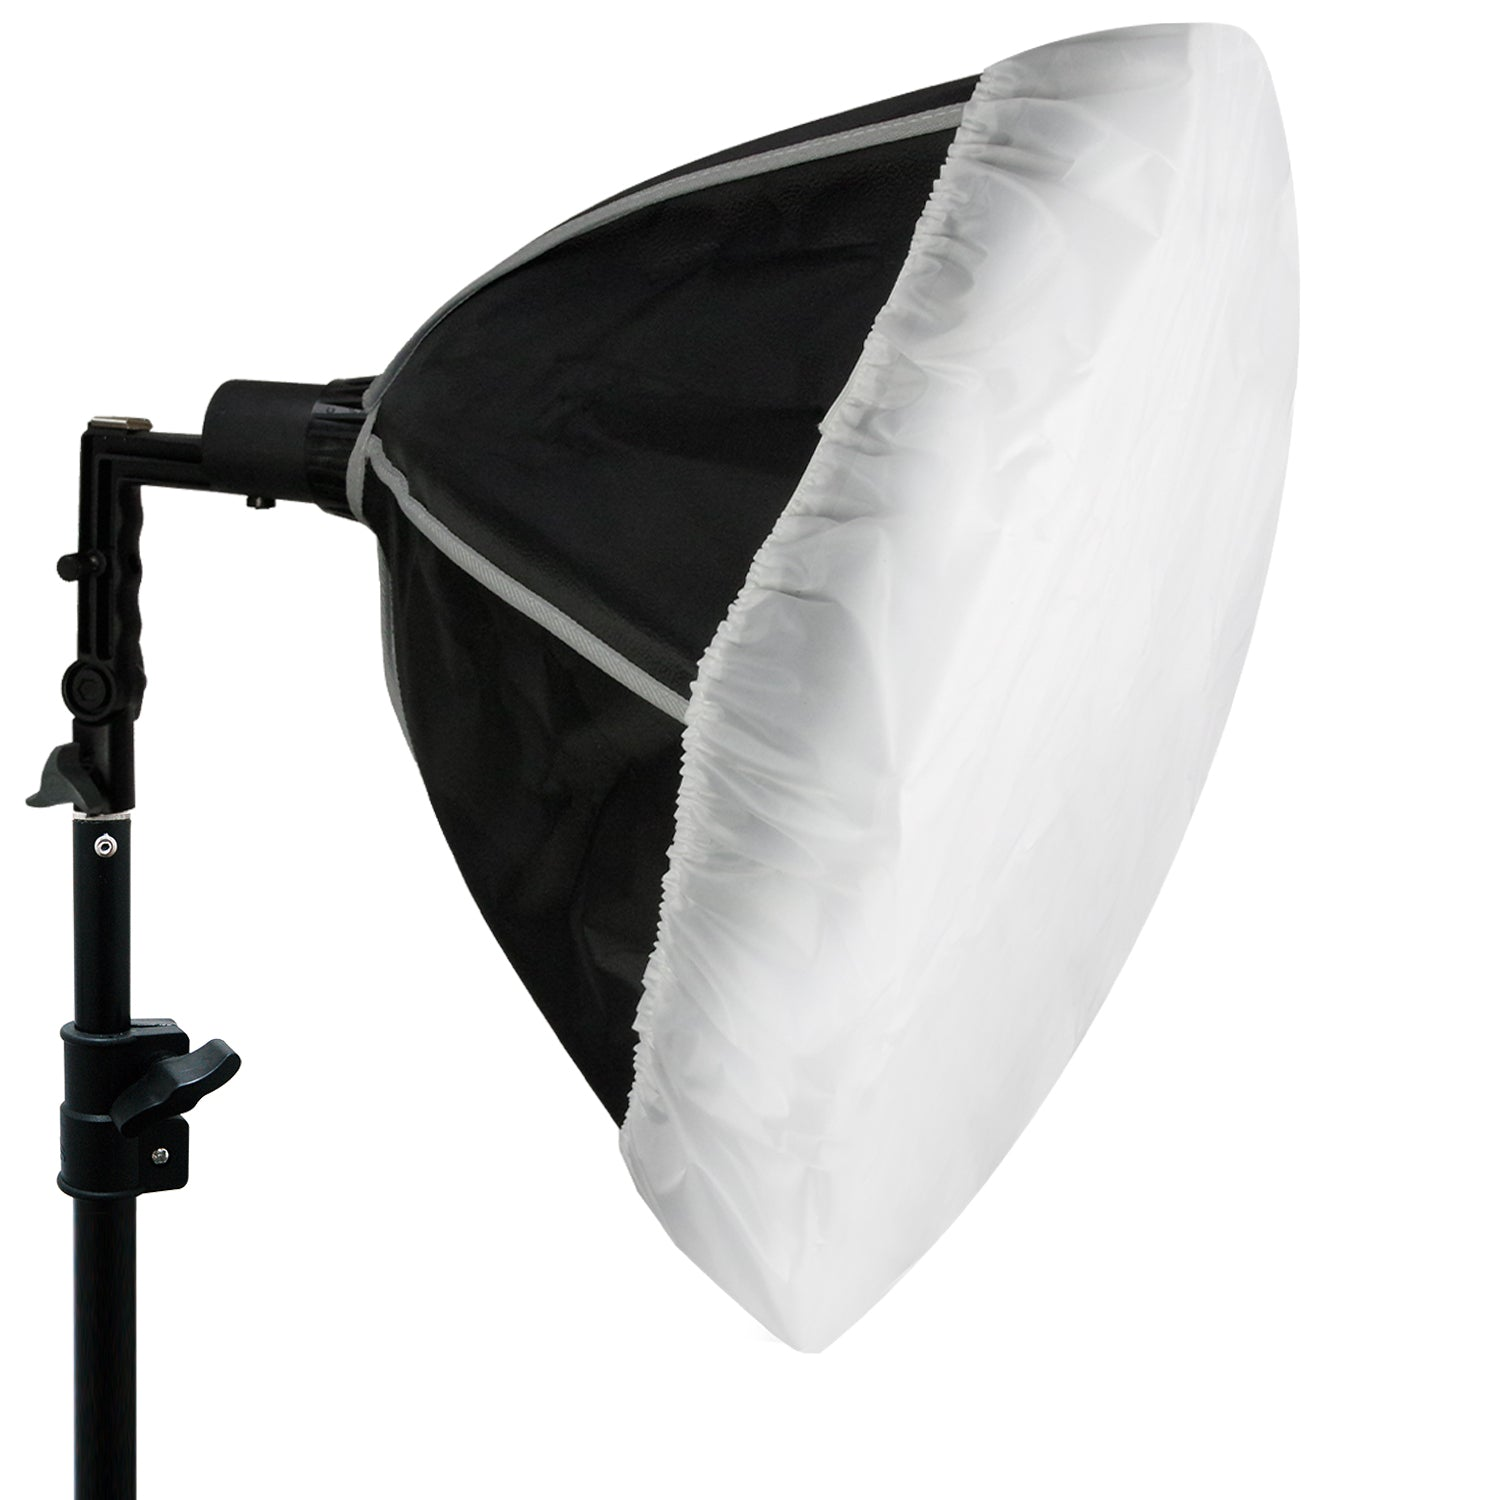 Loadstone Studio 26-inch Octagon Shape SoftBox Lighting Kit, Video Camera Photography, Photo Portrait Studio, Photo Lighting Diffuser, WMLS4694